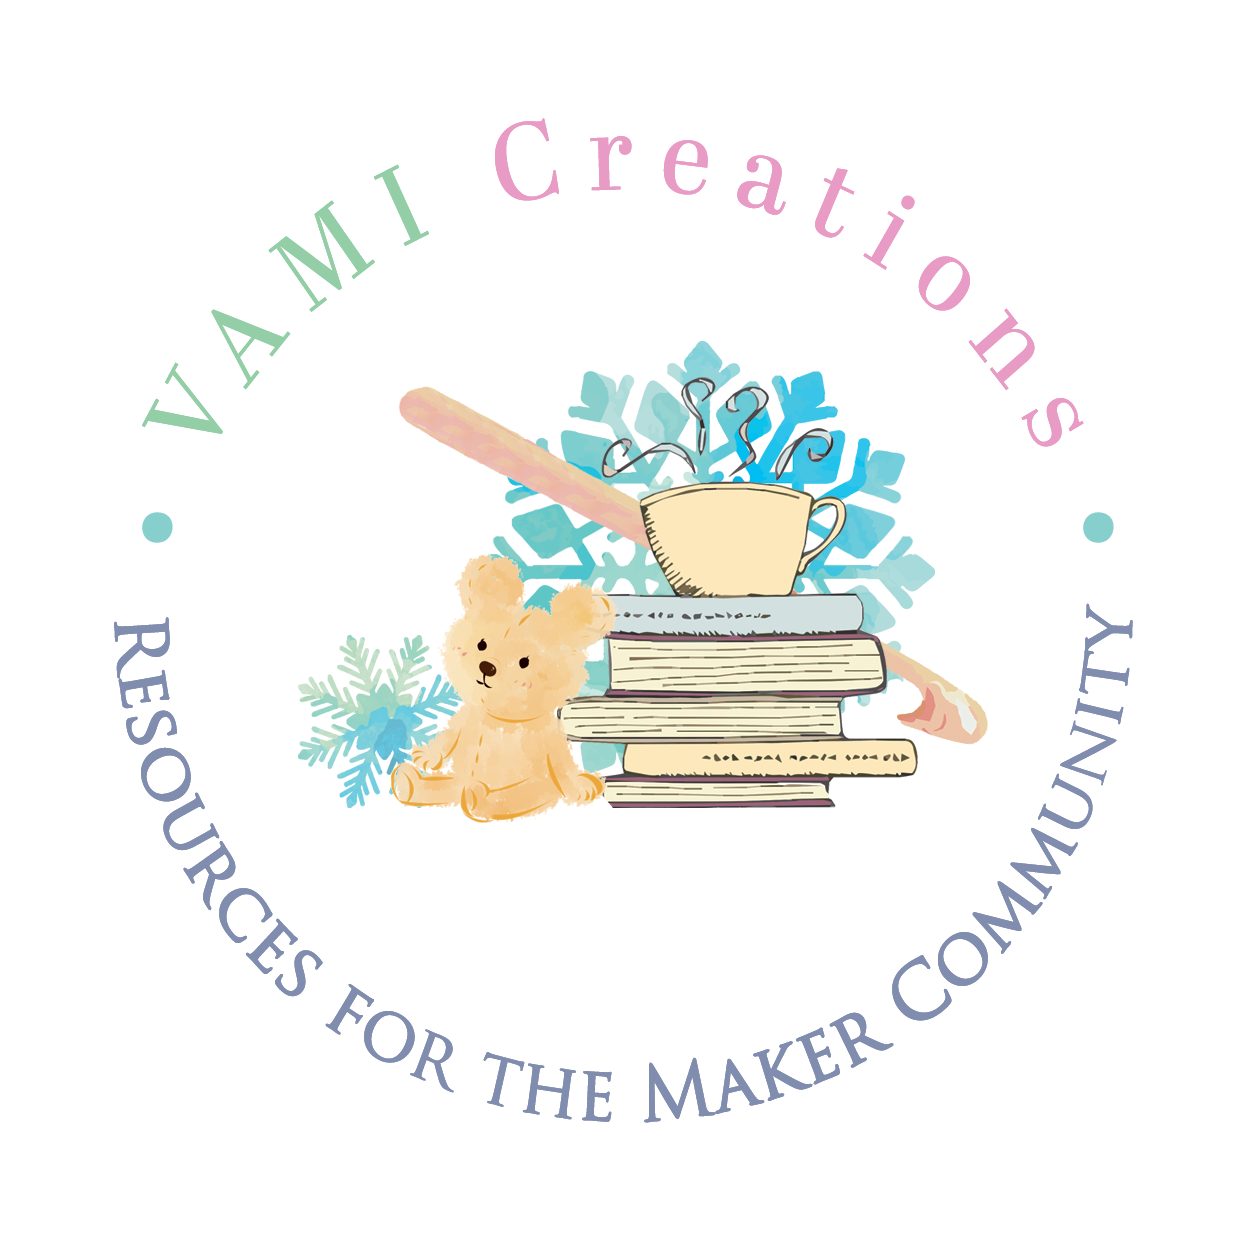 Resources for the Maker Community